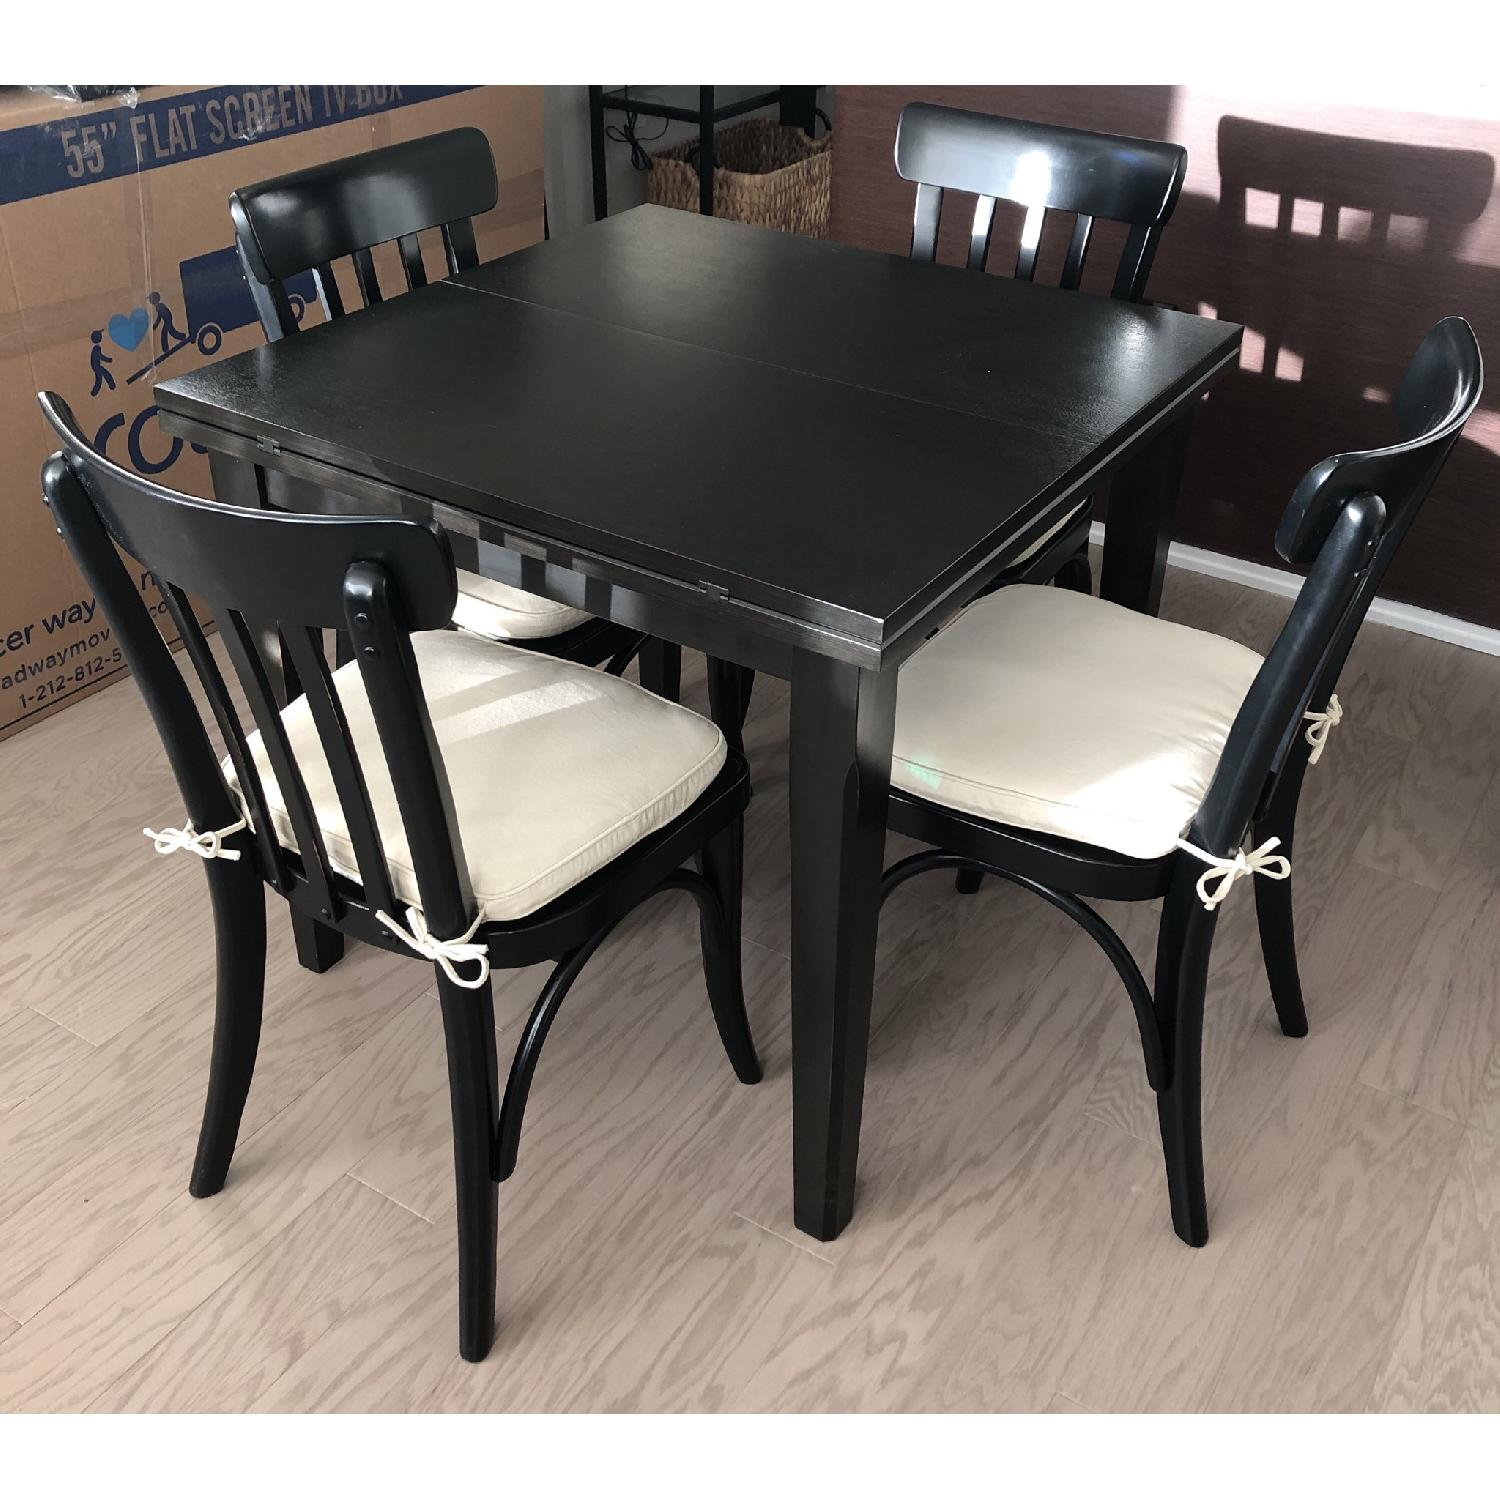 Pottery Barn Maren Dining Table-0